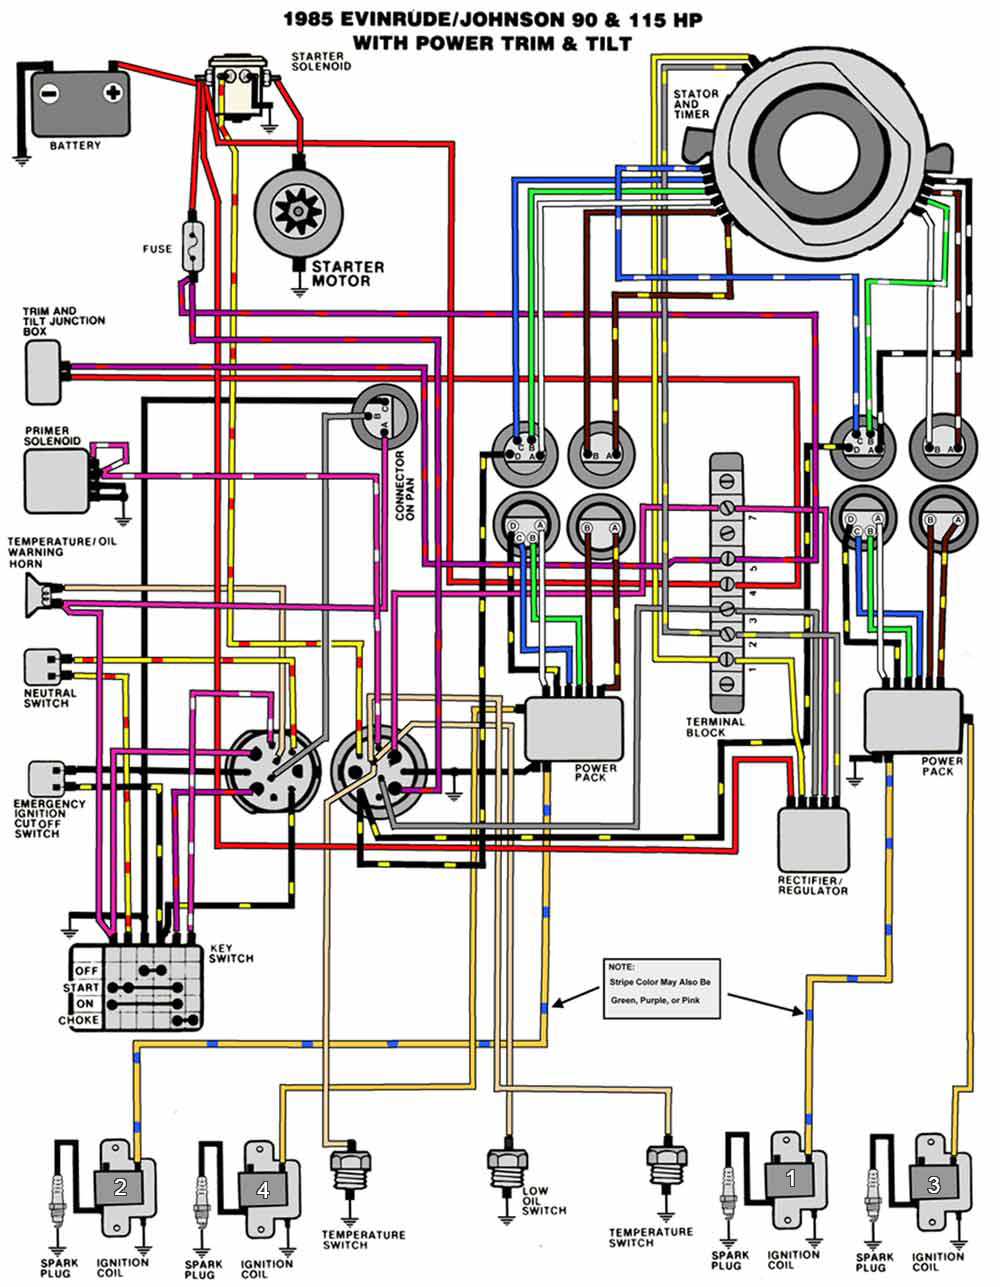 johnson evinrude wiring harness wiring diagram automotive